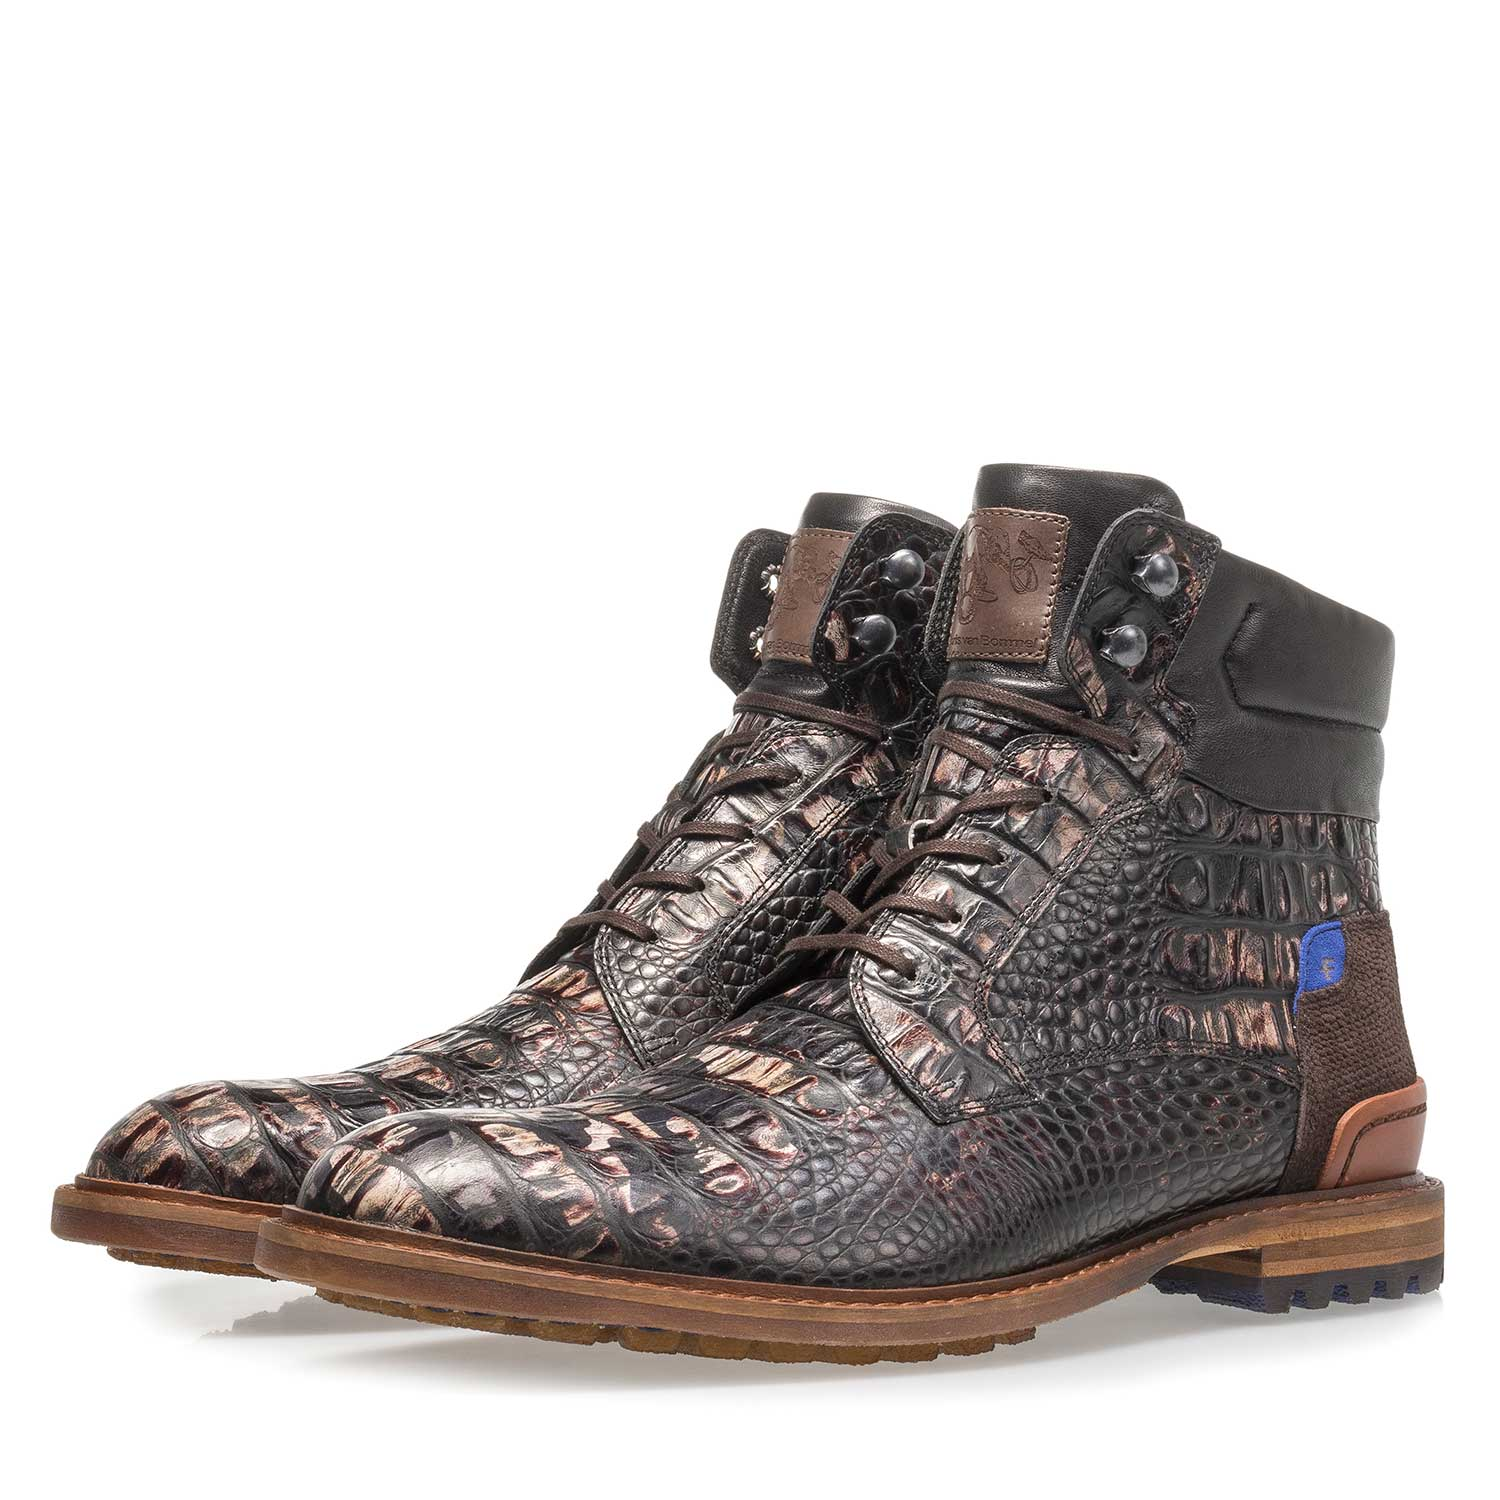 10234/18 - Dark brown leather lace boot with croco print